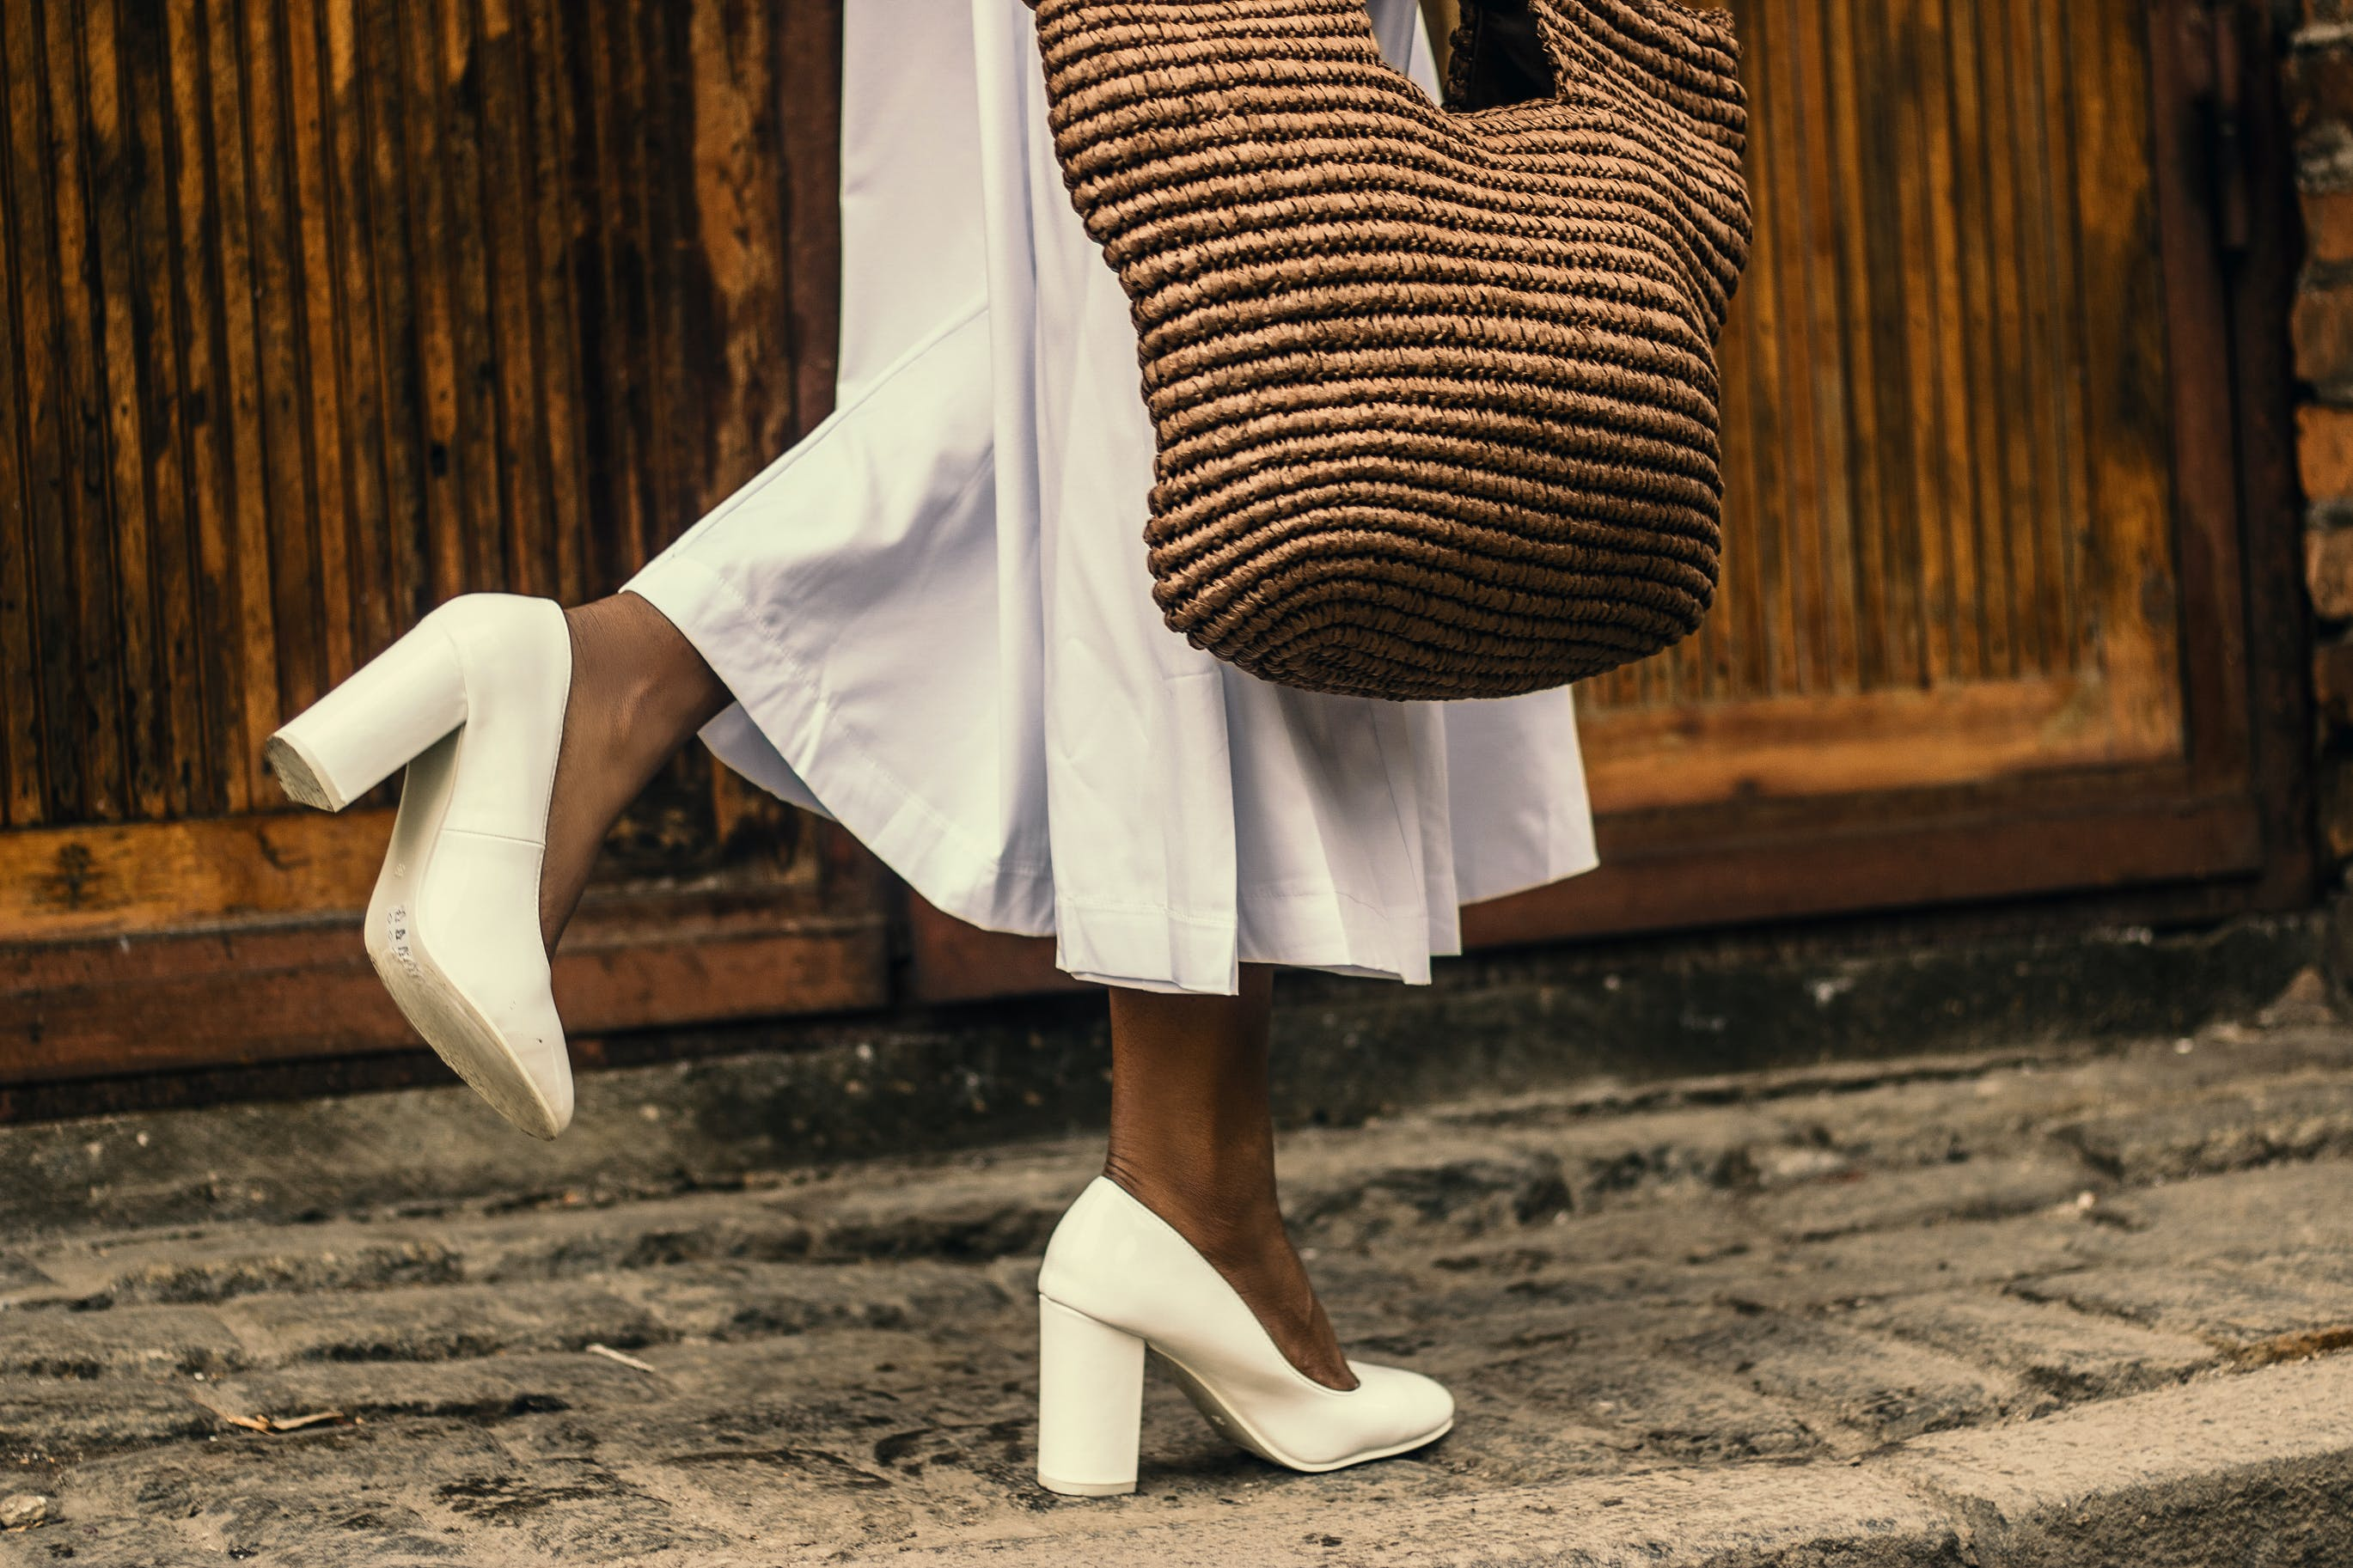 Woman Wearing White Dress and White High-heeled Shoes While Walking on Sidewalk